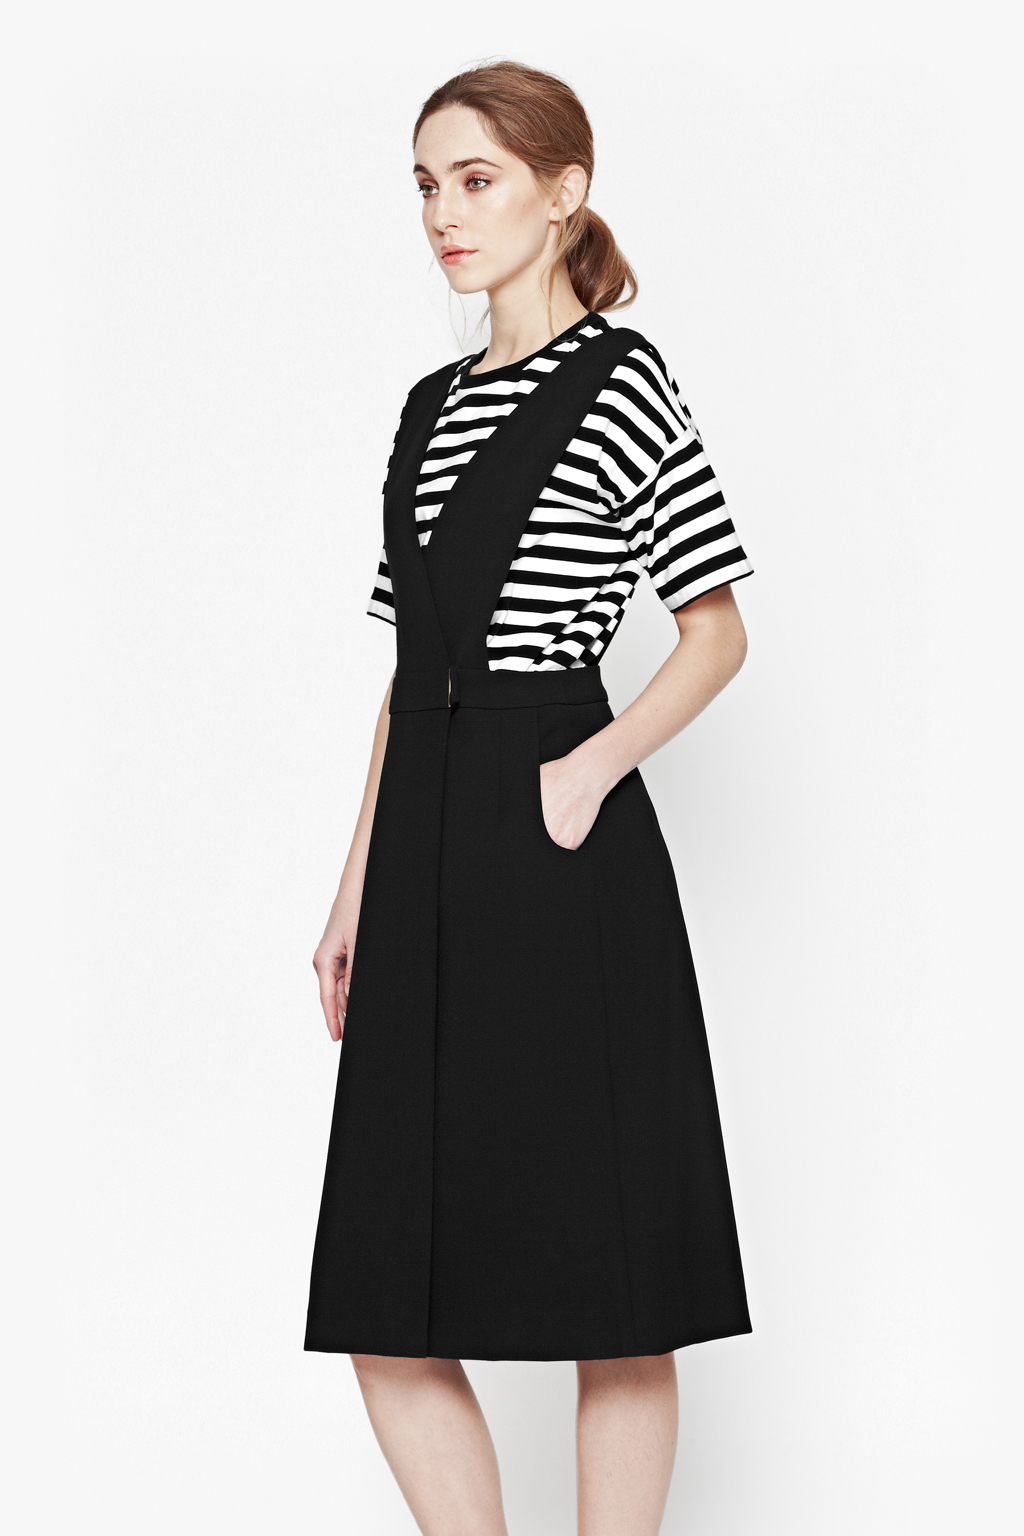 dbebaaeb1506 French Connection Sundae Suiting Pinafore Dress in Black - Lyst